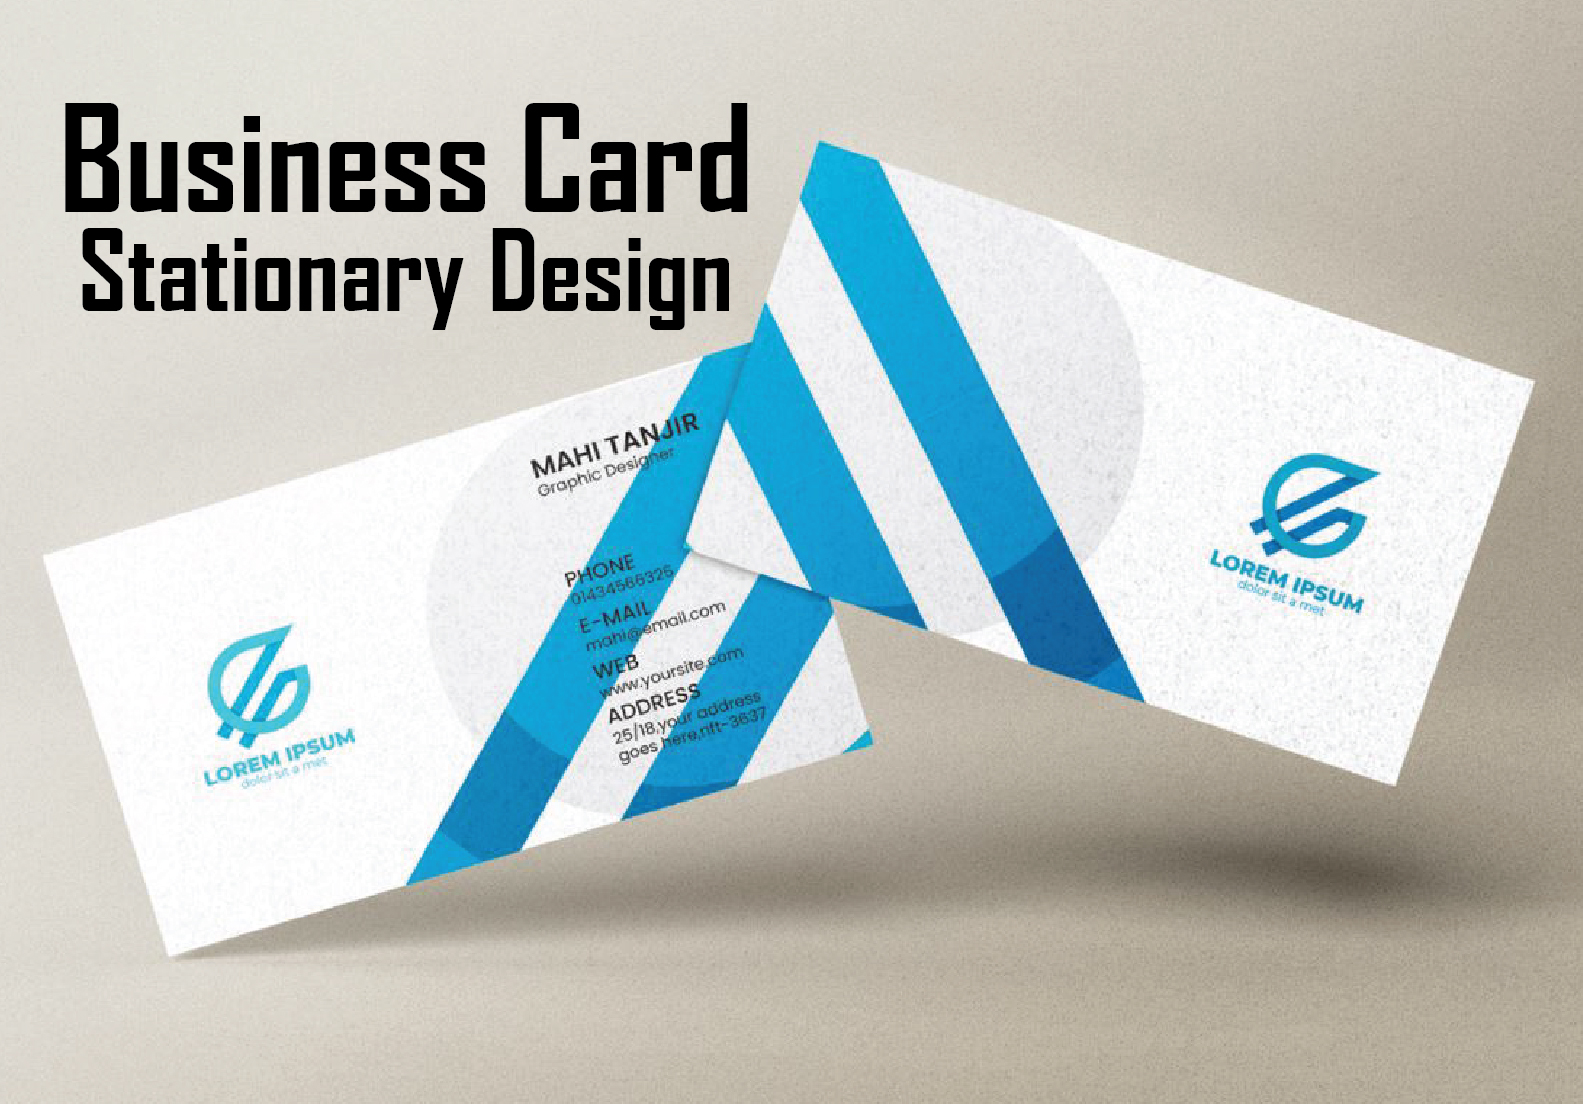 I can create beautiful business cards and stationery design